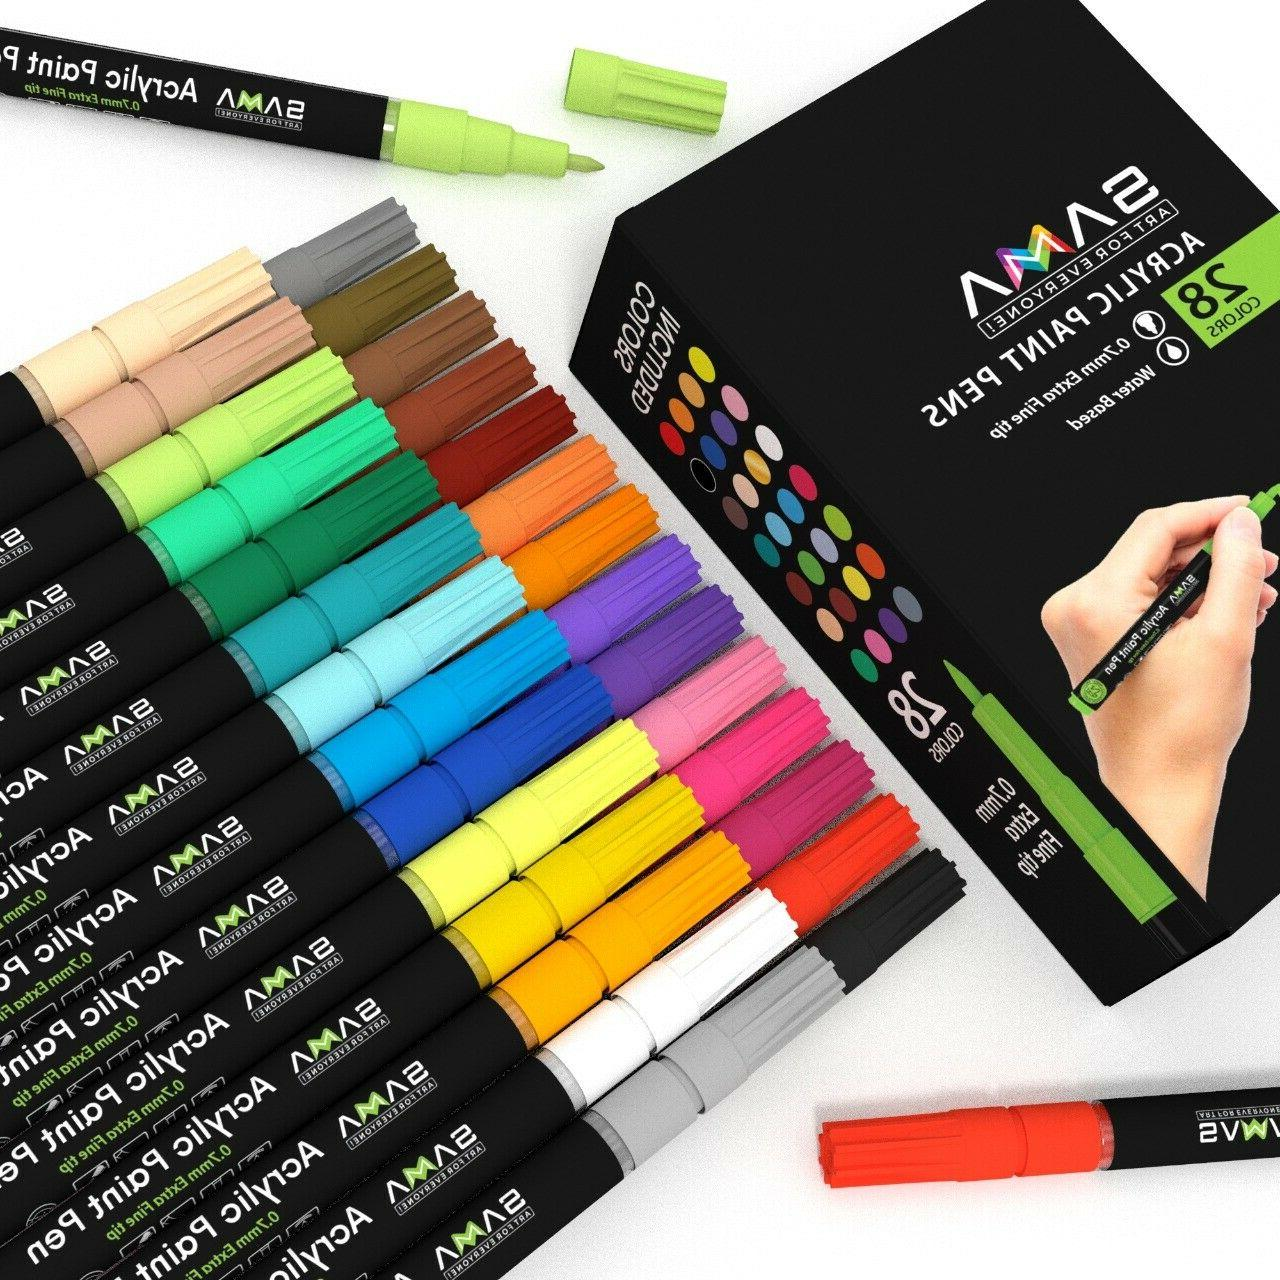 Acrylic 28 Premium Markers Fine Tip for Art Project